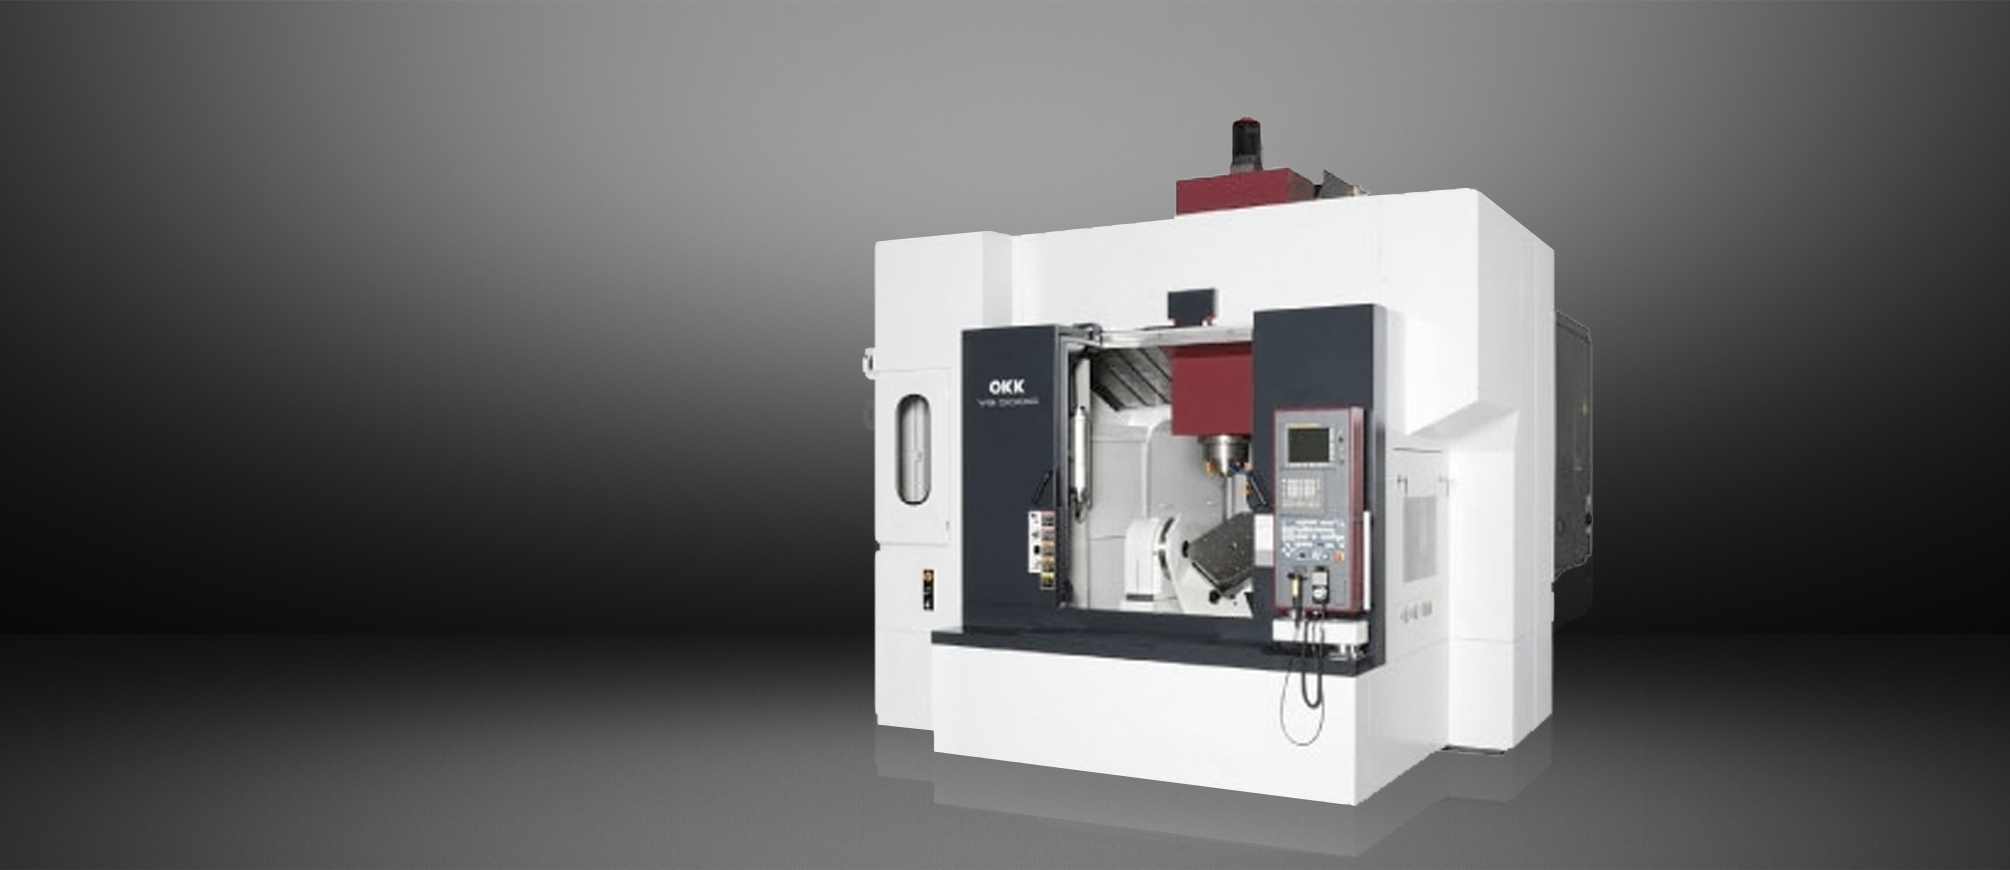 VG-5000 5 Axis Machining Centers